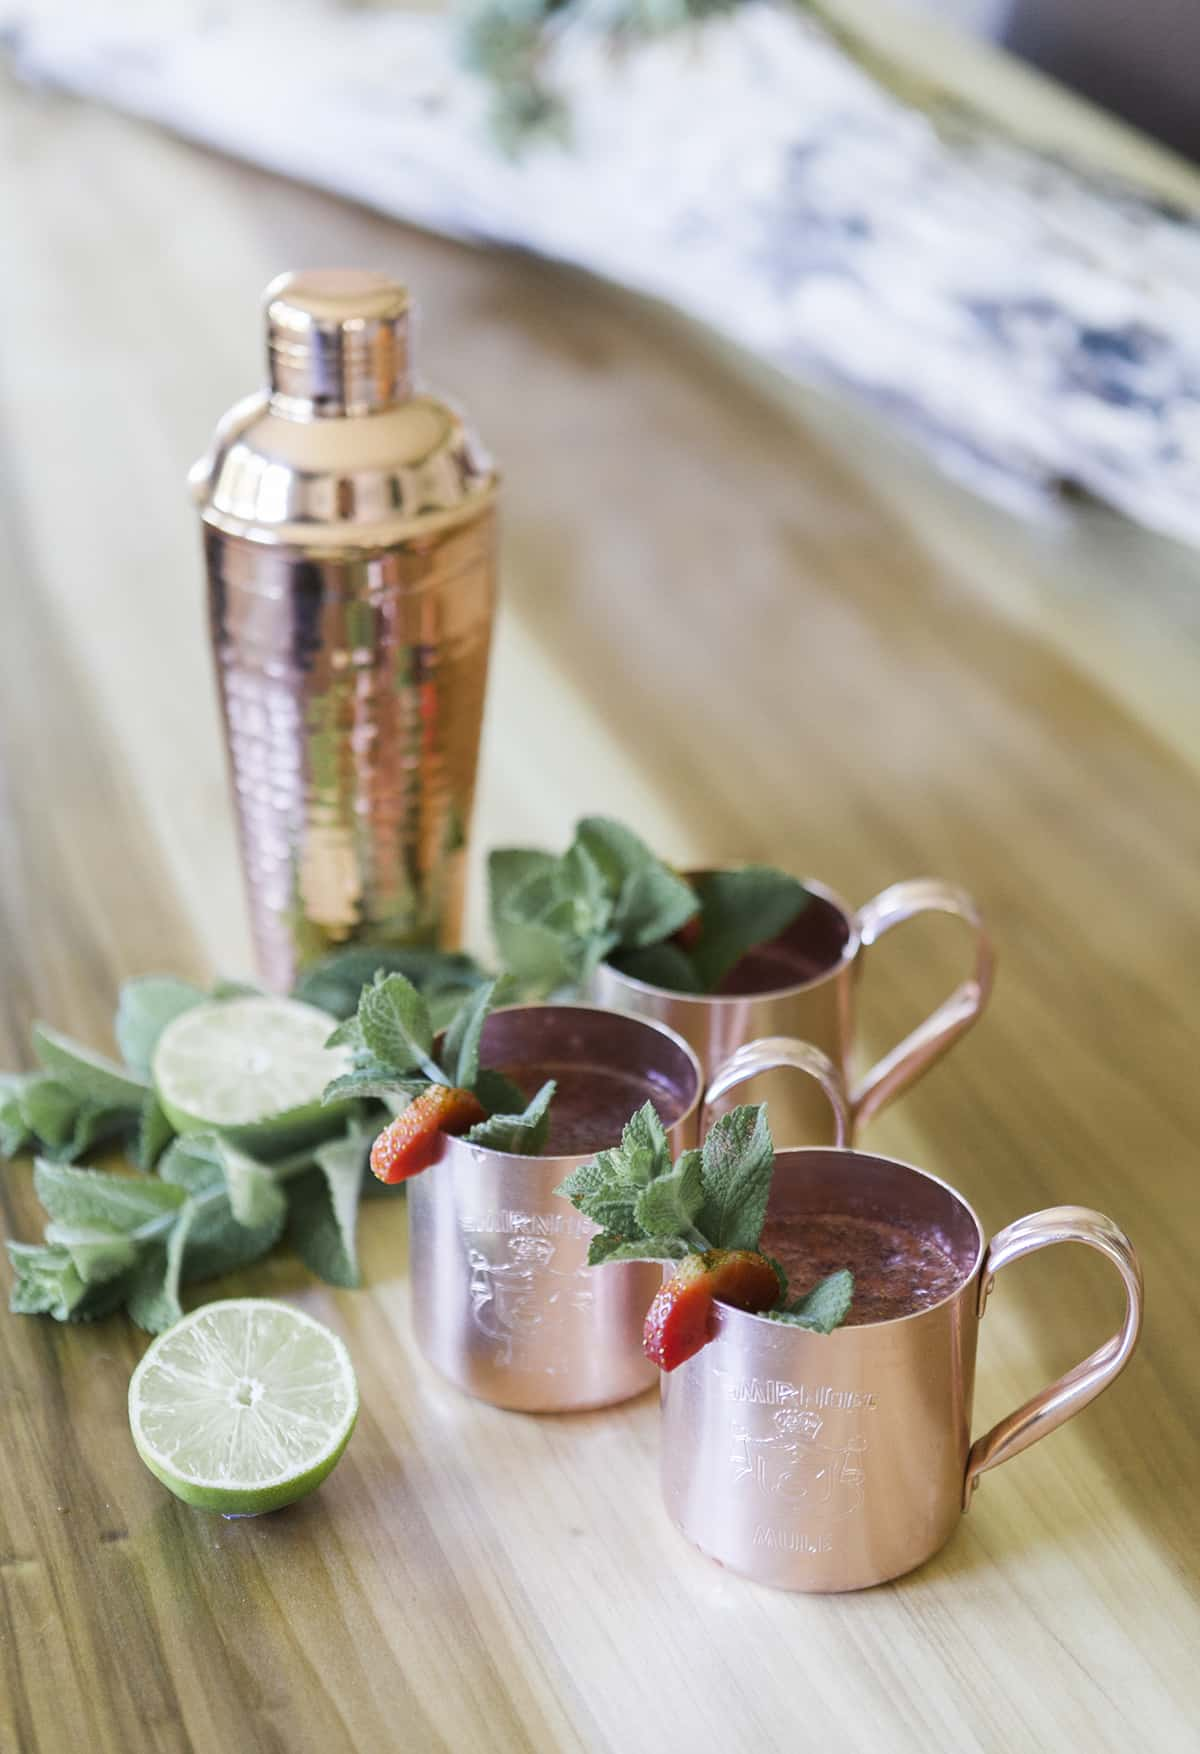 Drink Your Garden: Moscow Mule